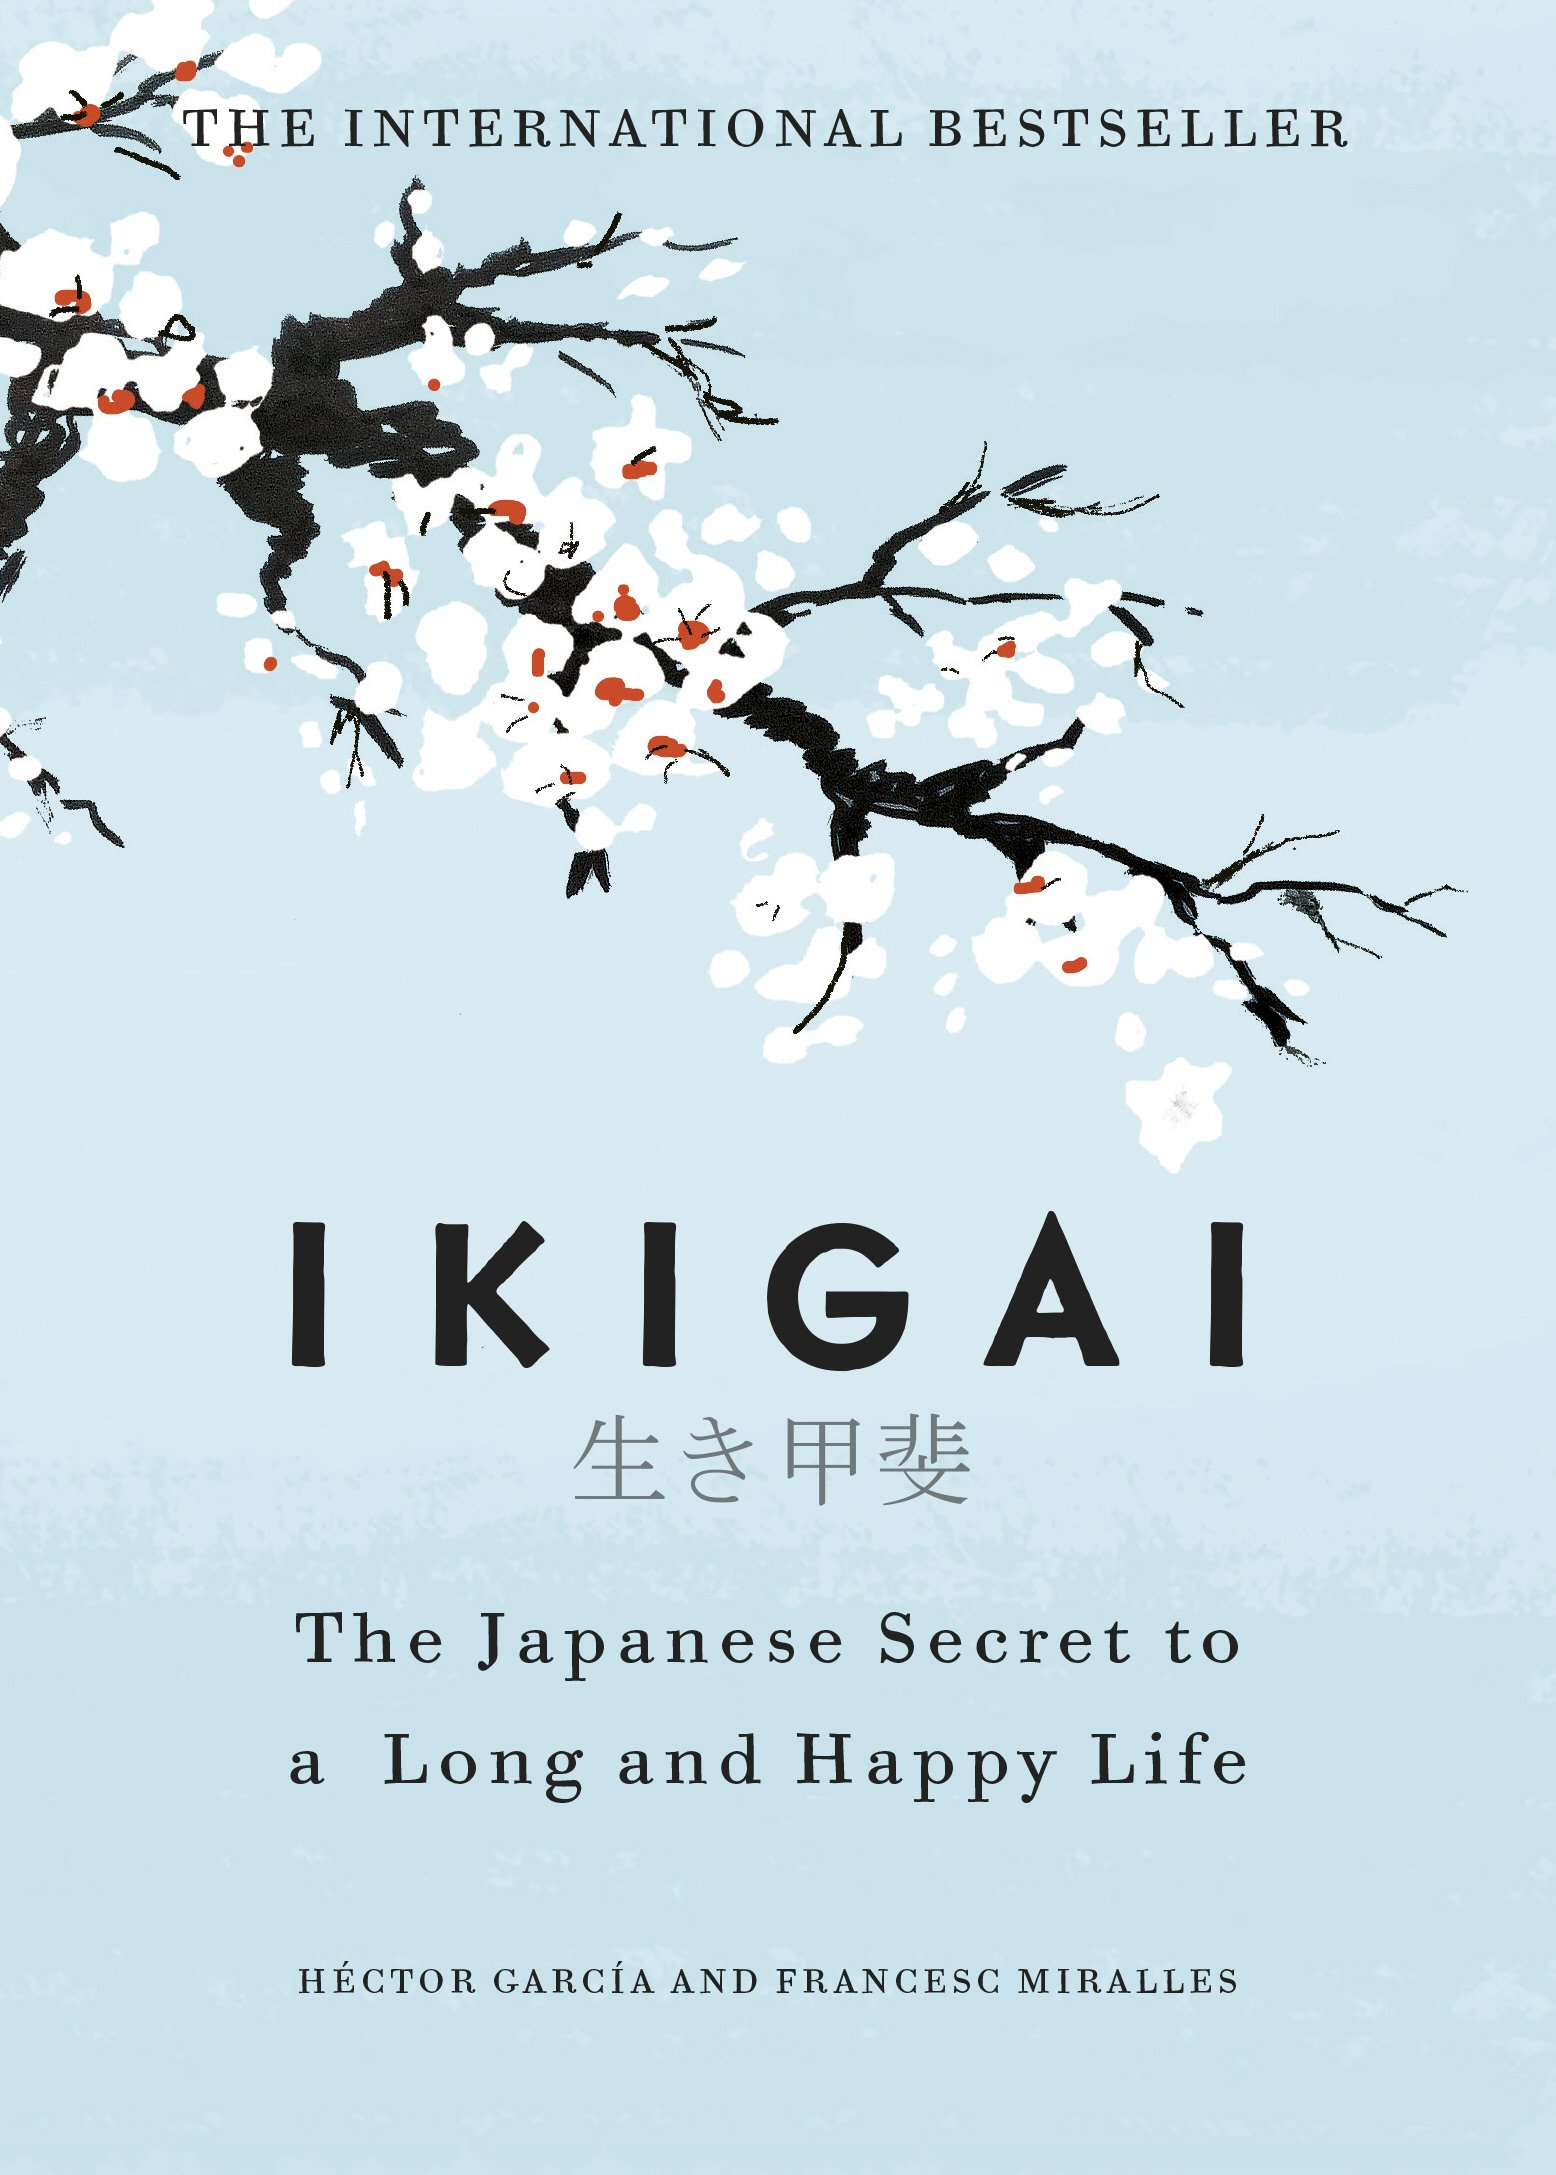 Ikigai: The Japanese Secret To A Long And Happy Life by Hector Garcia and Francesc Miralles